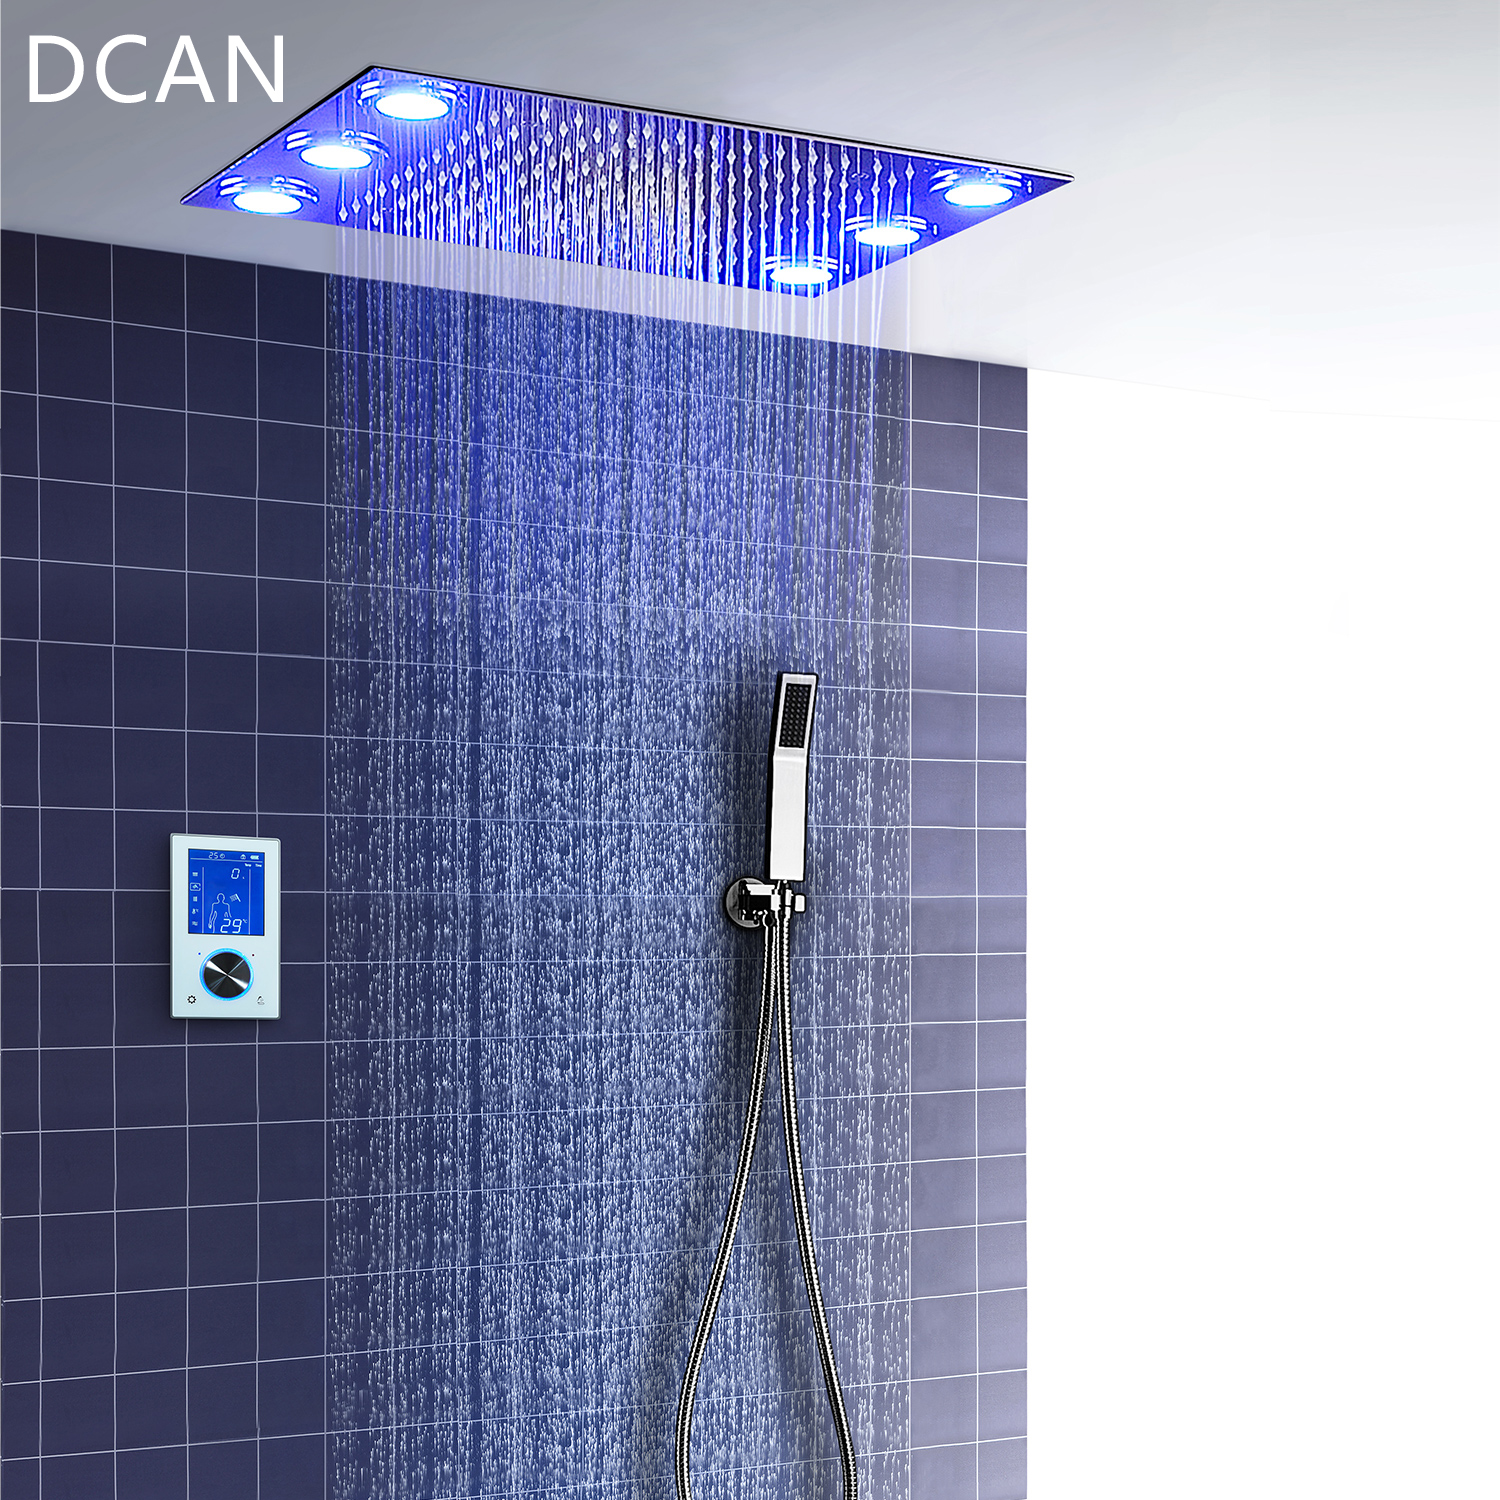 Digital Thermostatic Shower Set Controller Touch Control Panel Modern Luxury European Style Sus304 Rainfall Bathroom Ledceiling Ideal Gift For All Occasions